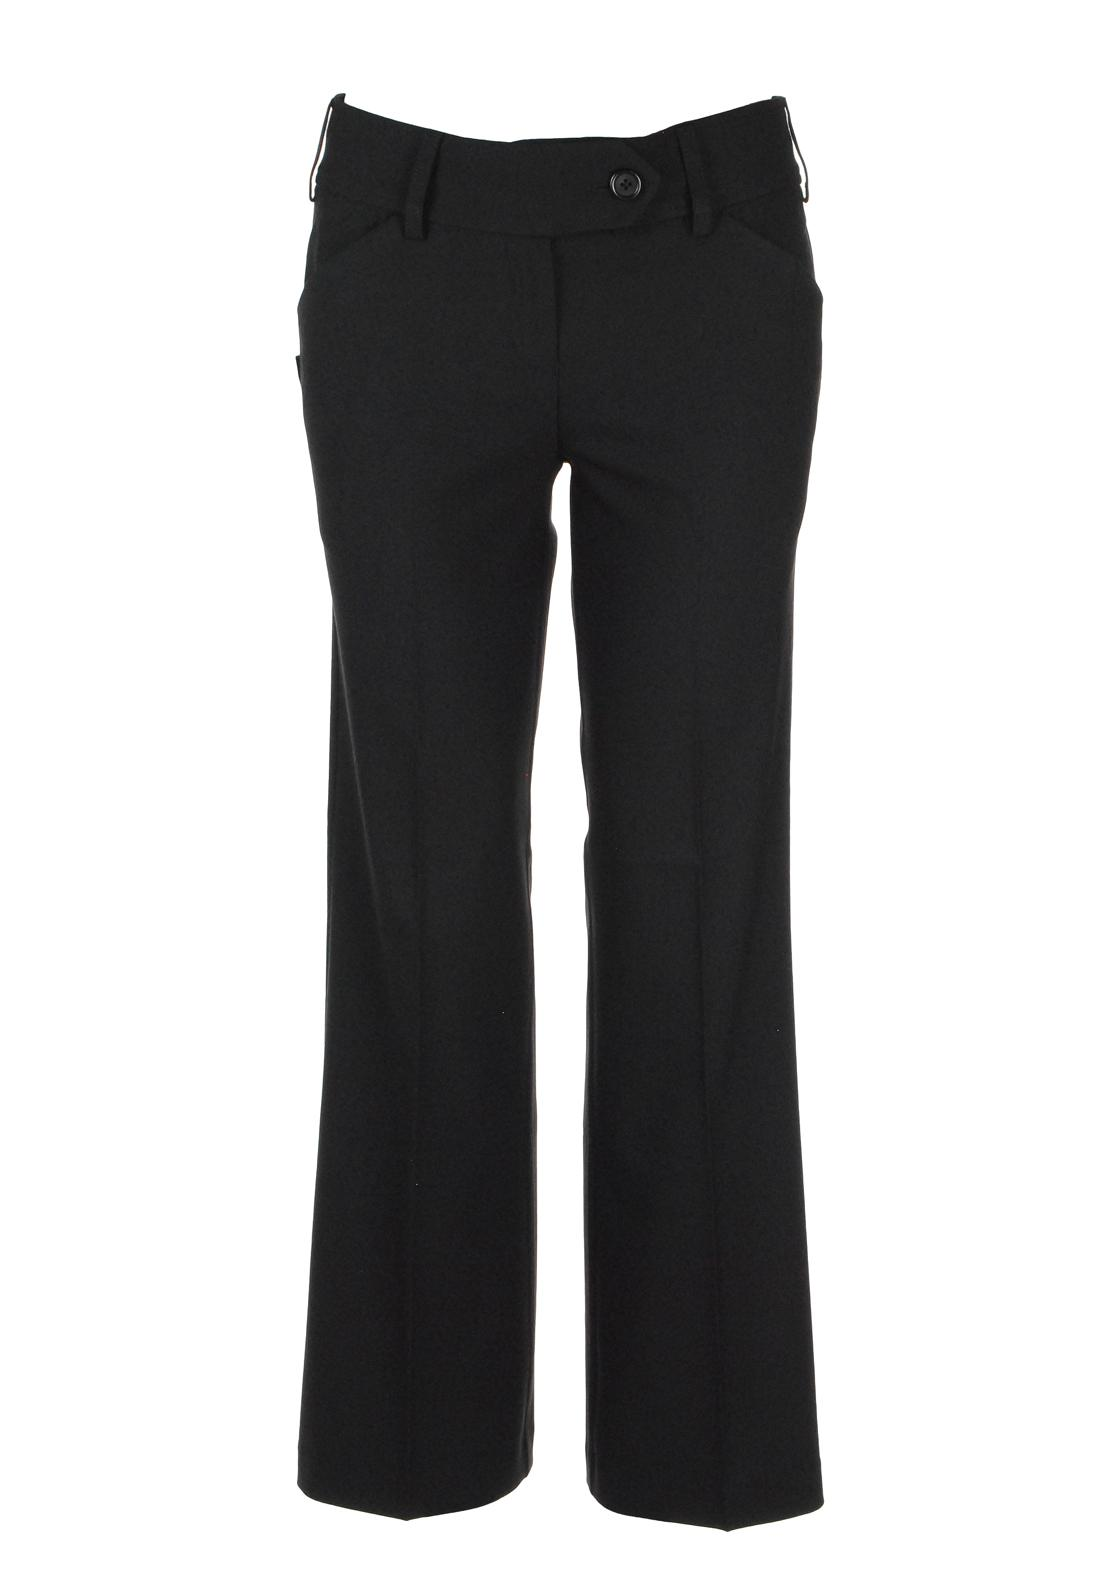 St. Columba's College Stranorlar Girls Trouser, Black